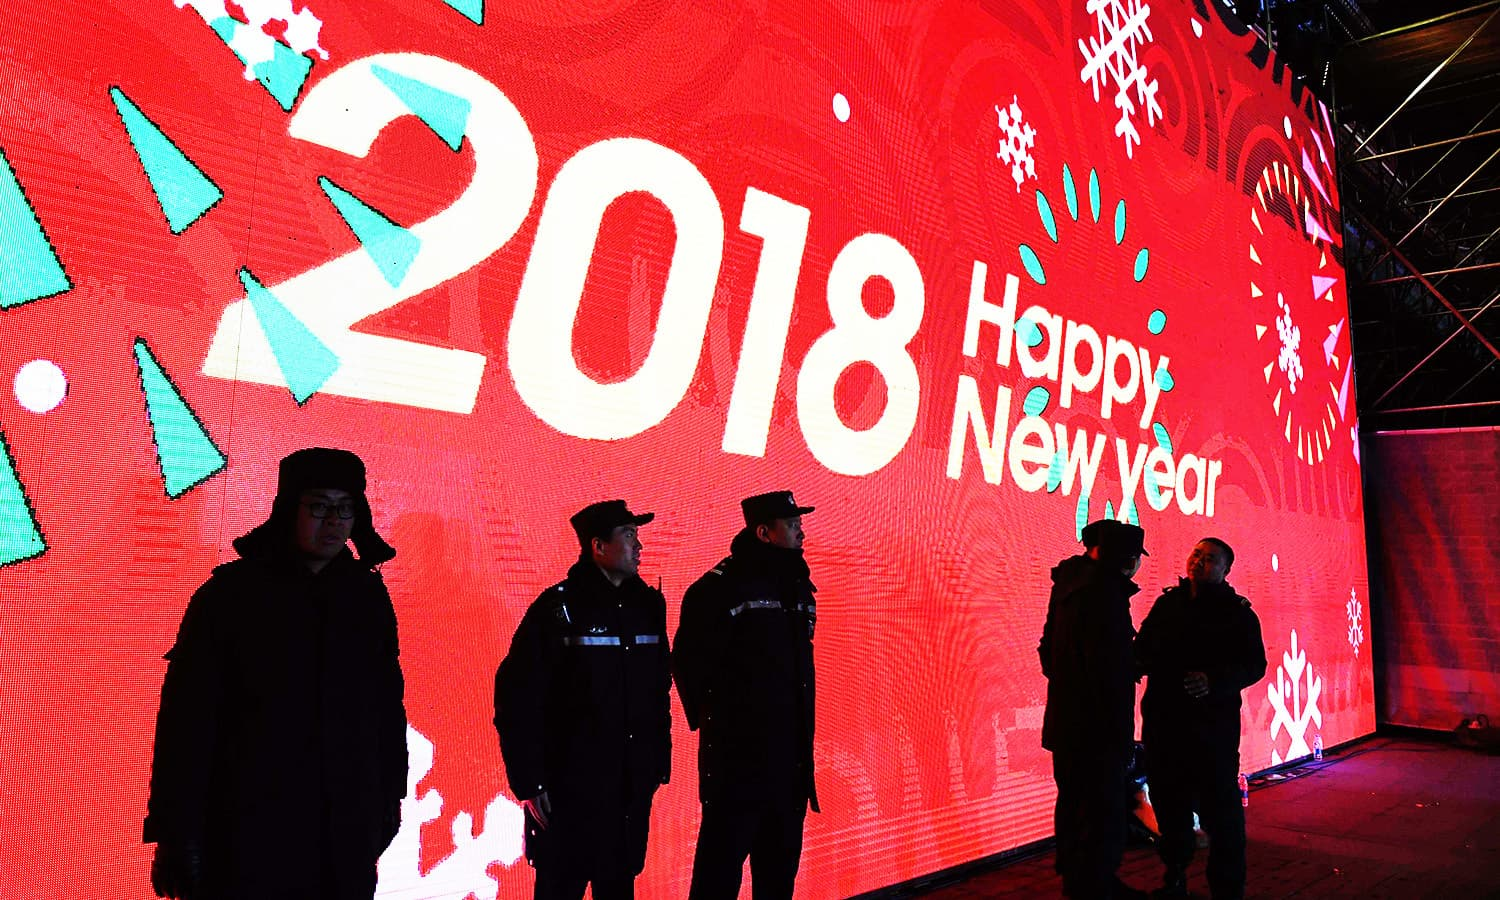 Policemen stand guard at a countdown event marking the arrival of the New Year in Beijing, China.—AFP